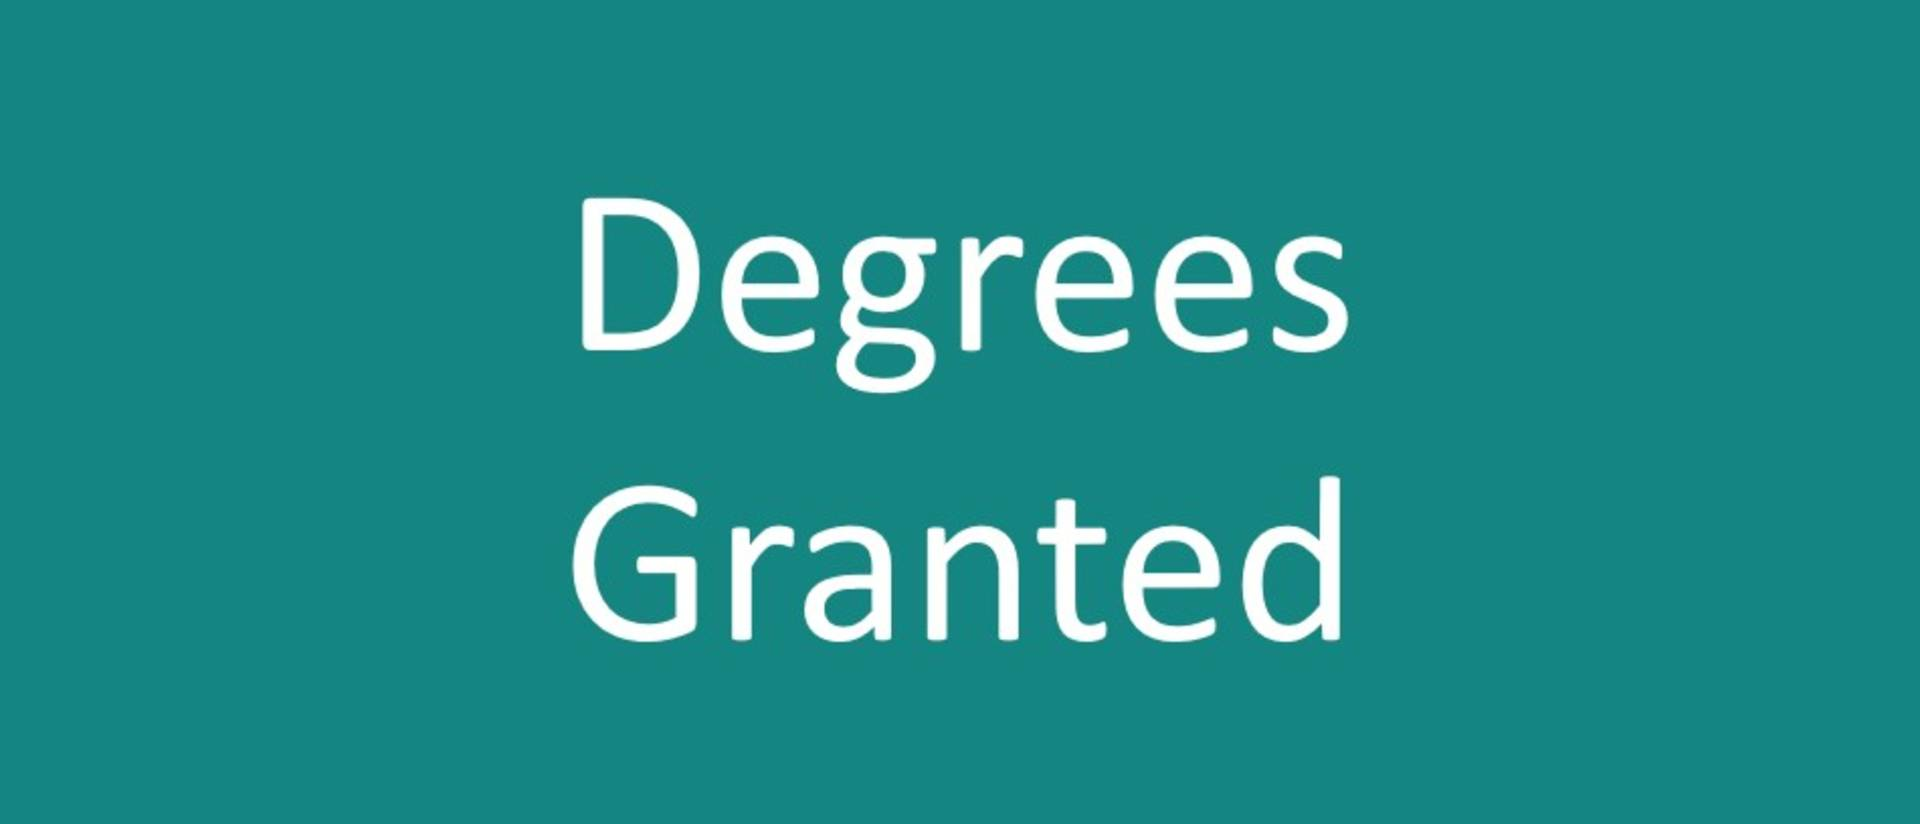 Degrees Granted